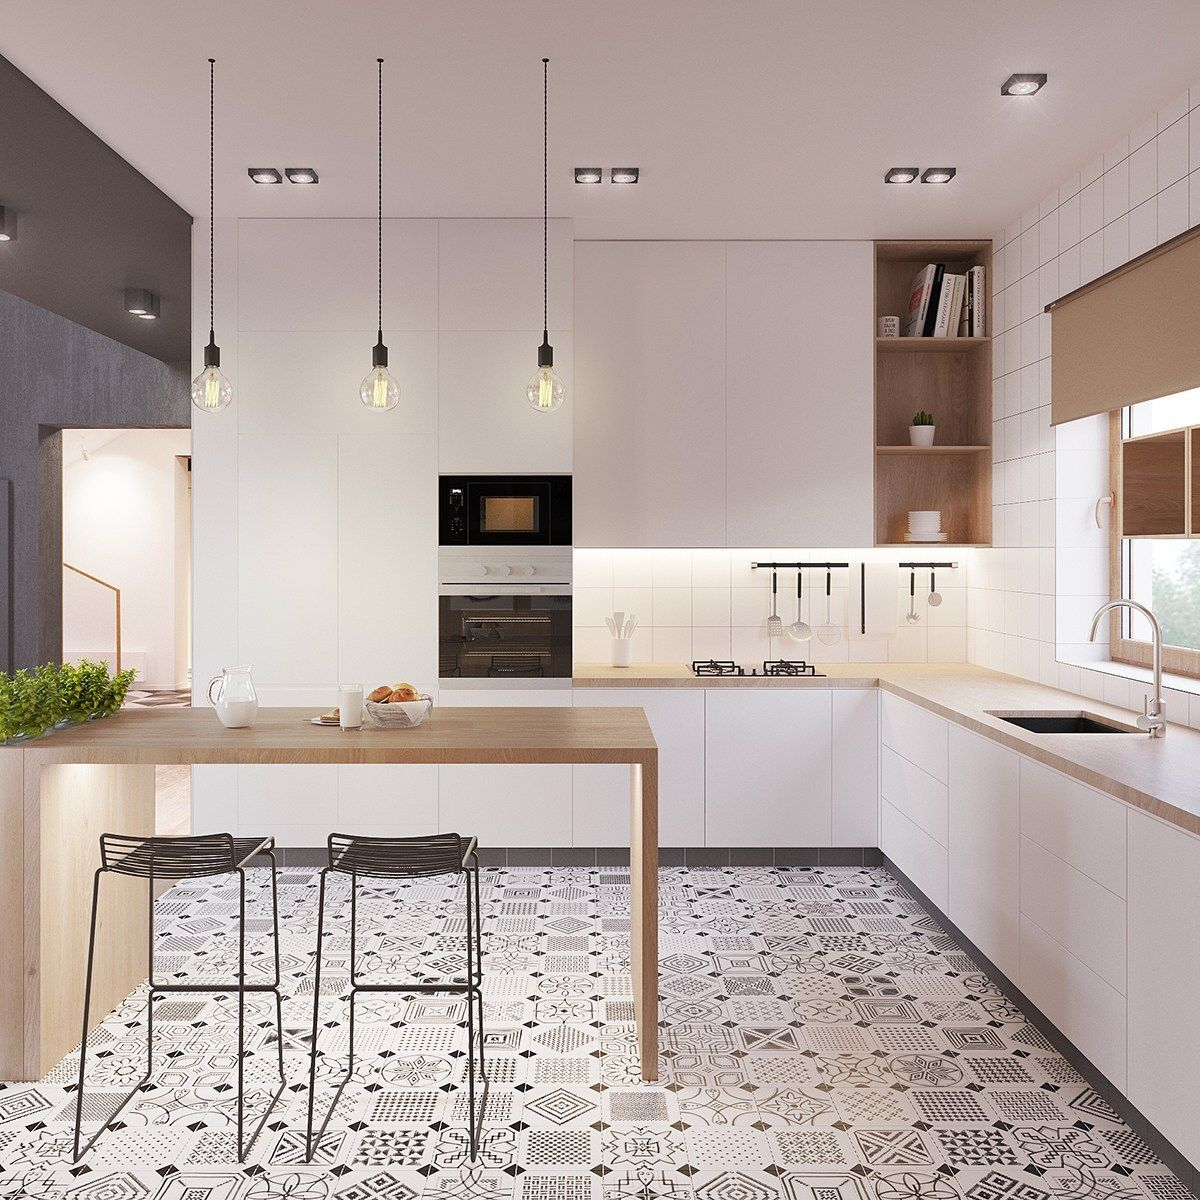 Find The Best Kitchen Design Ideas Inspiration To Match Your Style Browse Through Images Of Kitch Kitchen Design Decor Modern Kitchen Design Modern Kitchen